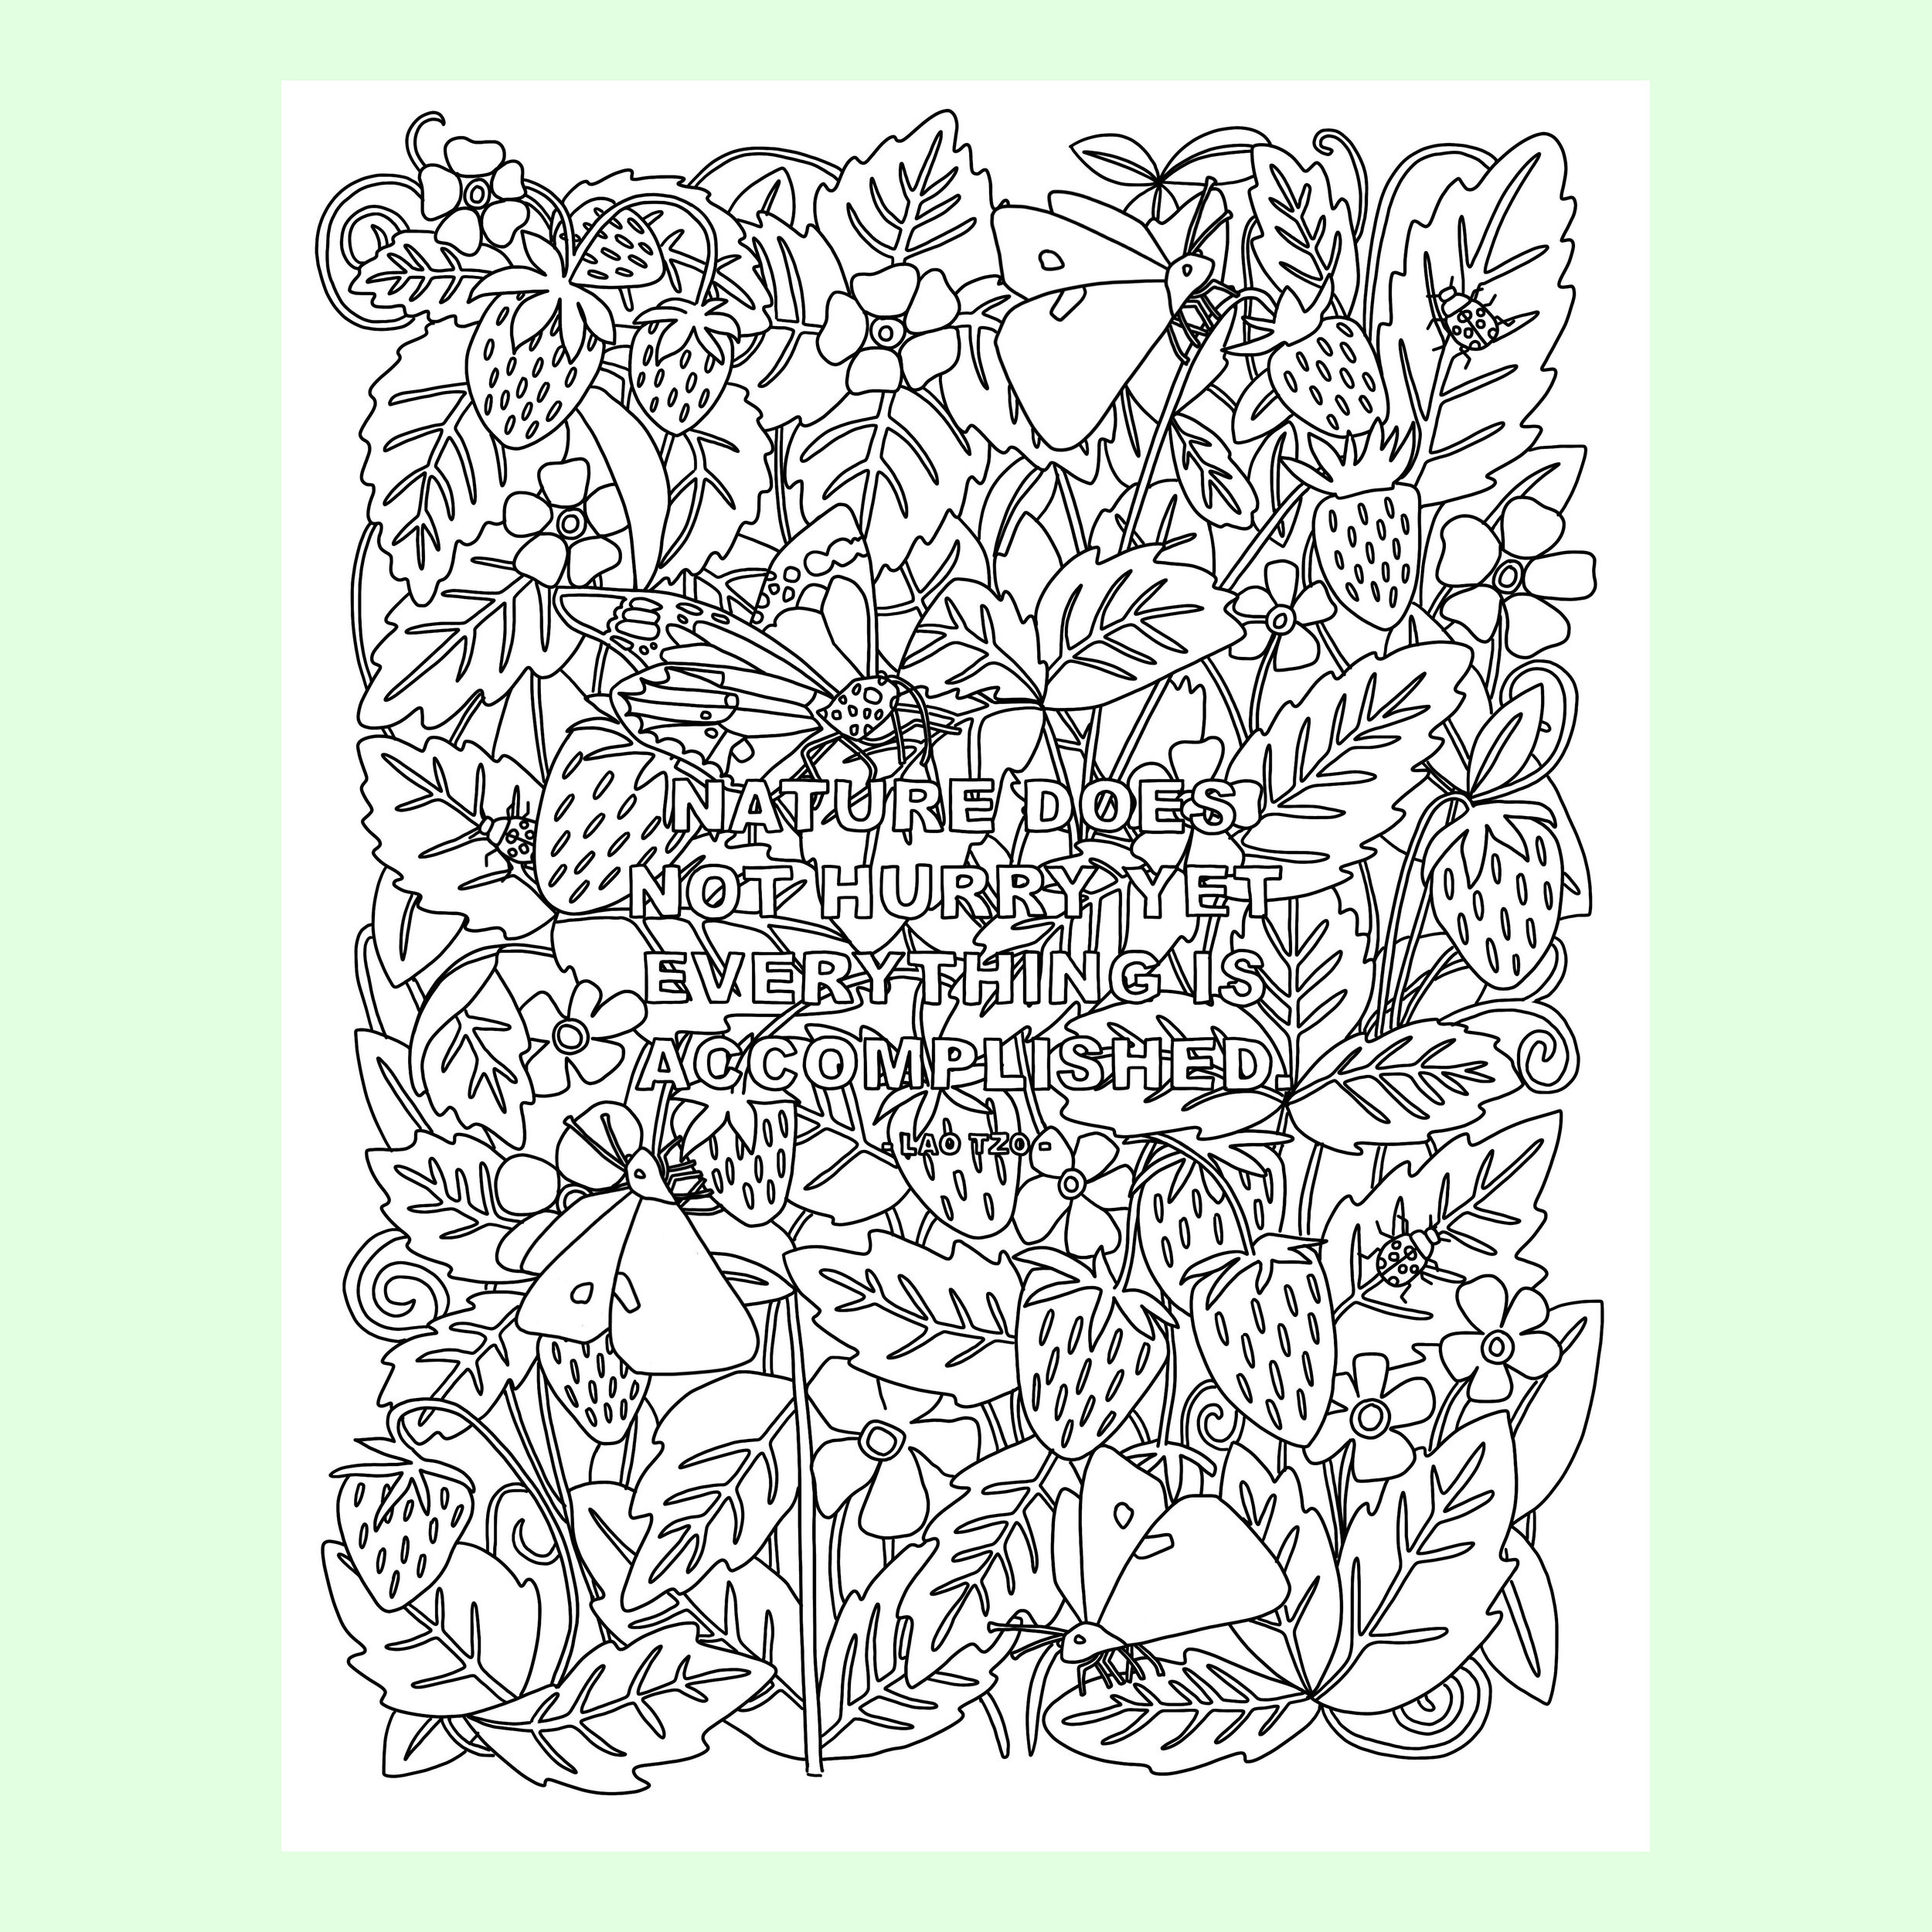 Nature Does Not Hurry - Coloring Page.jpg